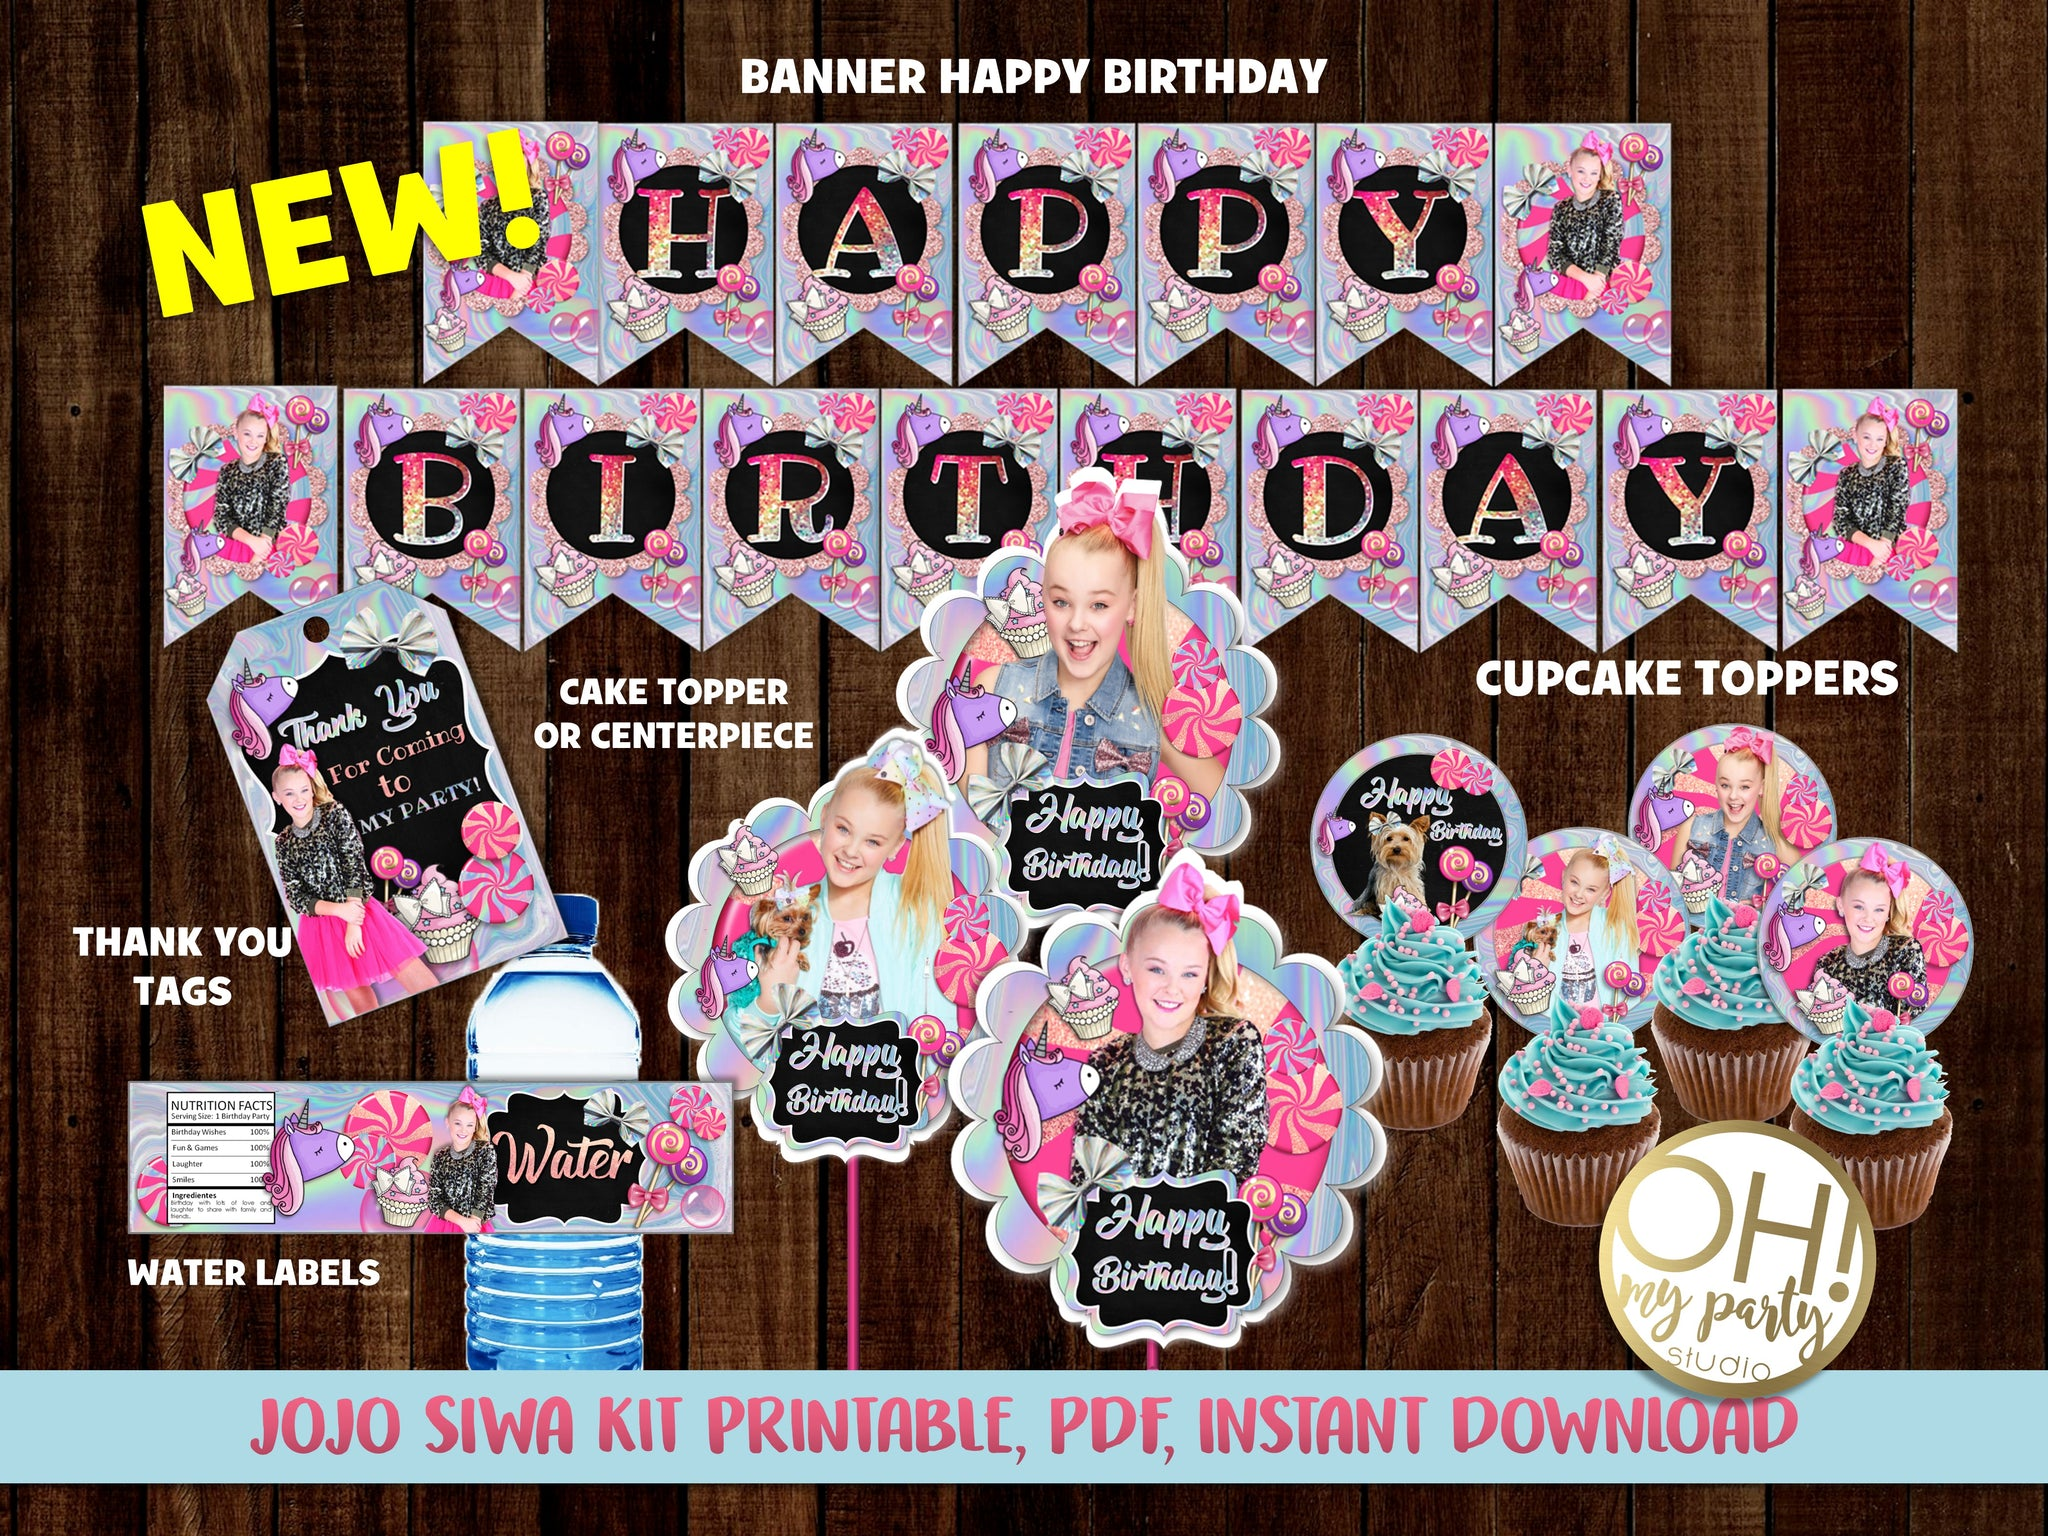 JOJO SIWA PARTY PRINTABLES, JOJO SIWA DECORATIONS, JOJO SIWA THANK YOU TAGS, JOJO SIWA BANNER, JOJO SIWA CUPCAKES, JOJO SIWA CENTERPIECES, JOJO SIWA CAKE TOPPER, JOJO SIWA PARTY THEME, JOJO SIWA PARTY IDEAS, JOJO SIWA BIRTHDAY